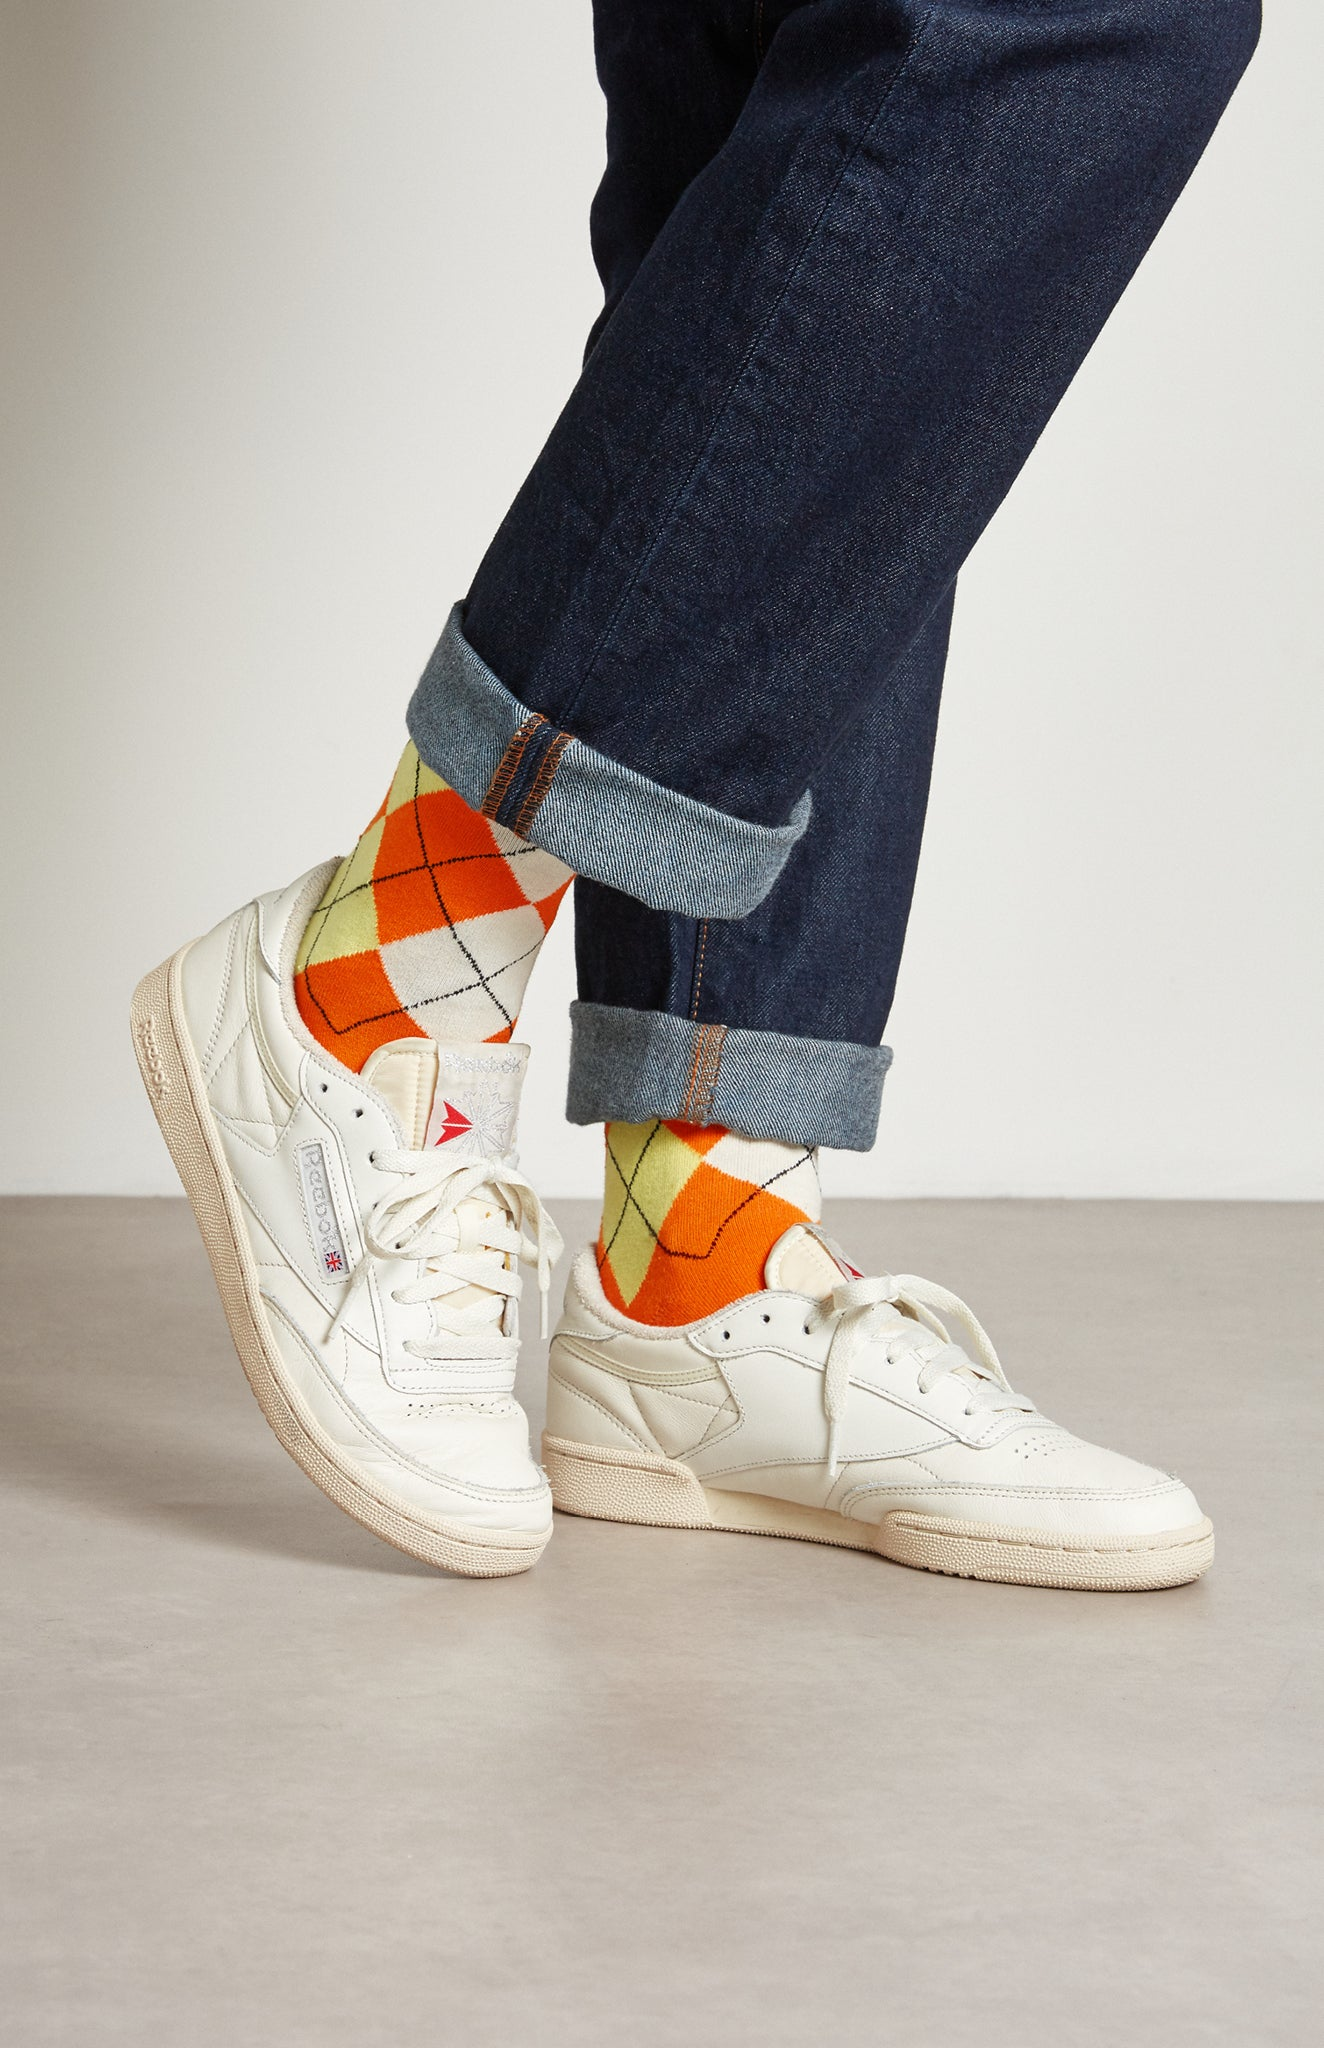 Pringle Reissued Women's Argyle Socks In Multi Orange